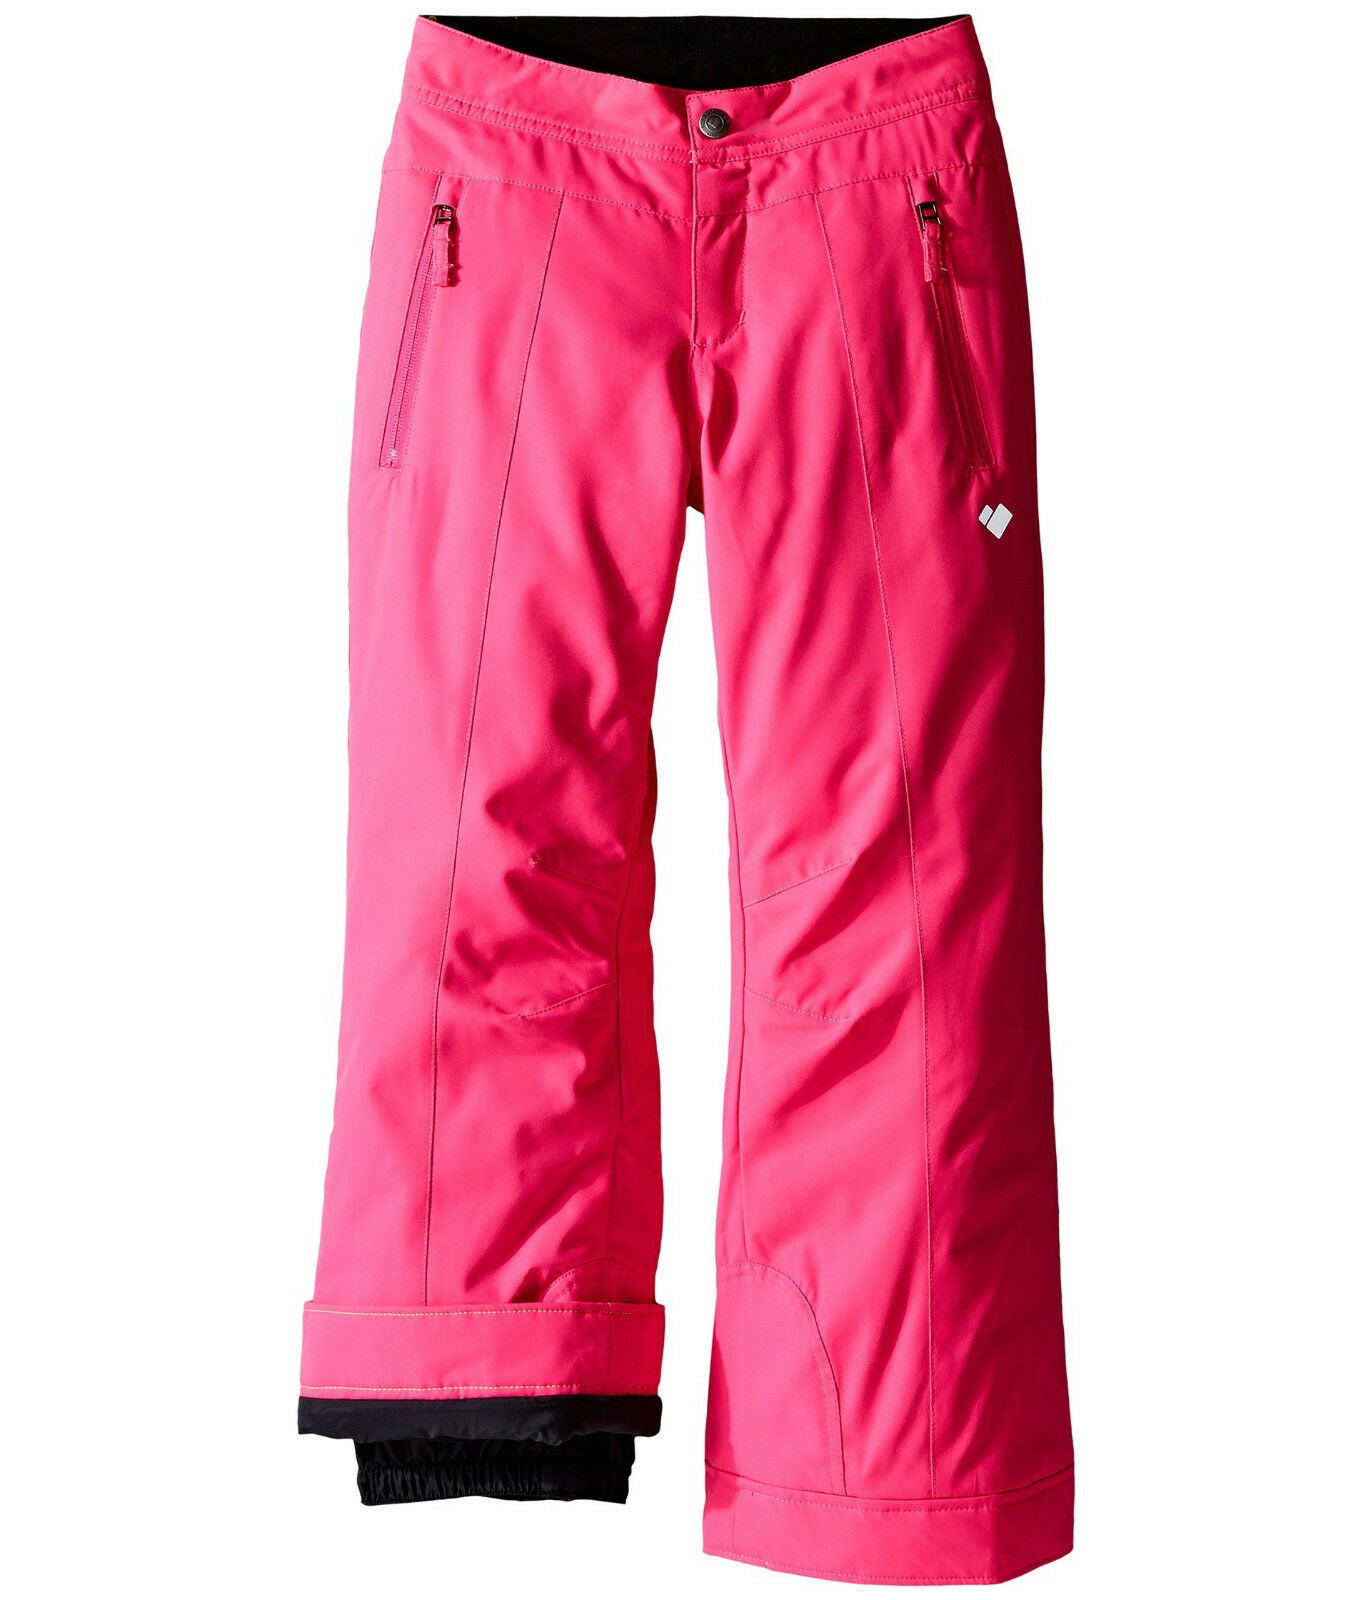 Obermeyer Girls Elsie Insulated Ski Snowboarding Pants, Snow Pant, Pant, Pant, Größe XL (18) f243e8